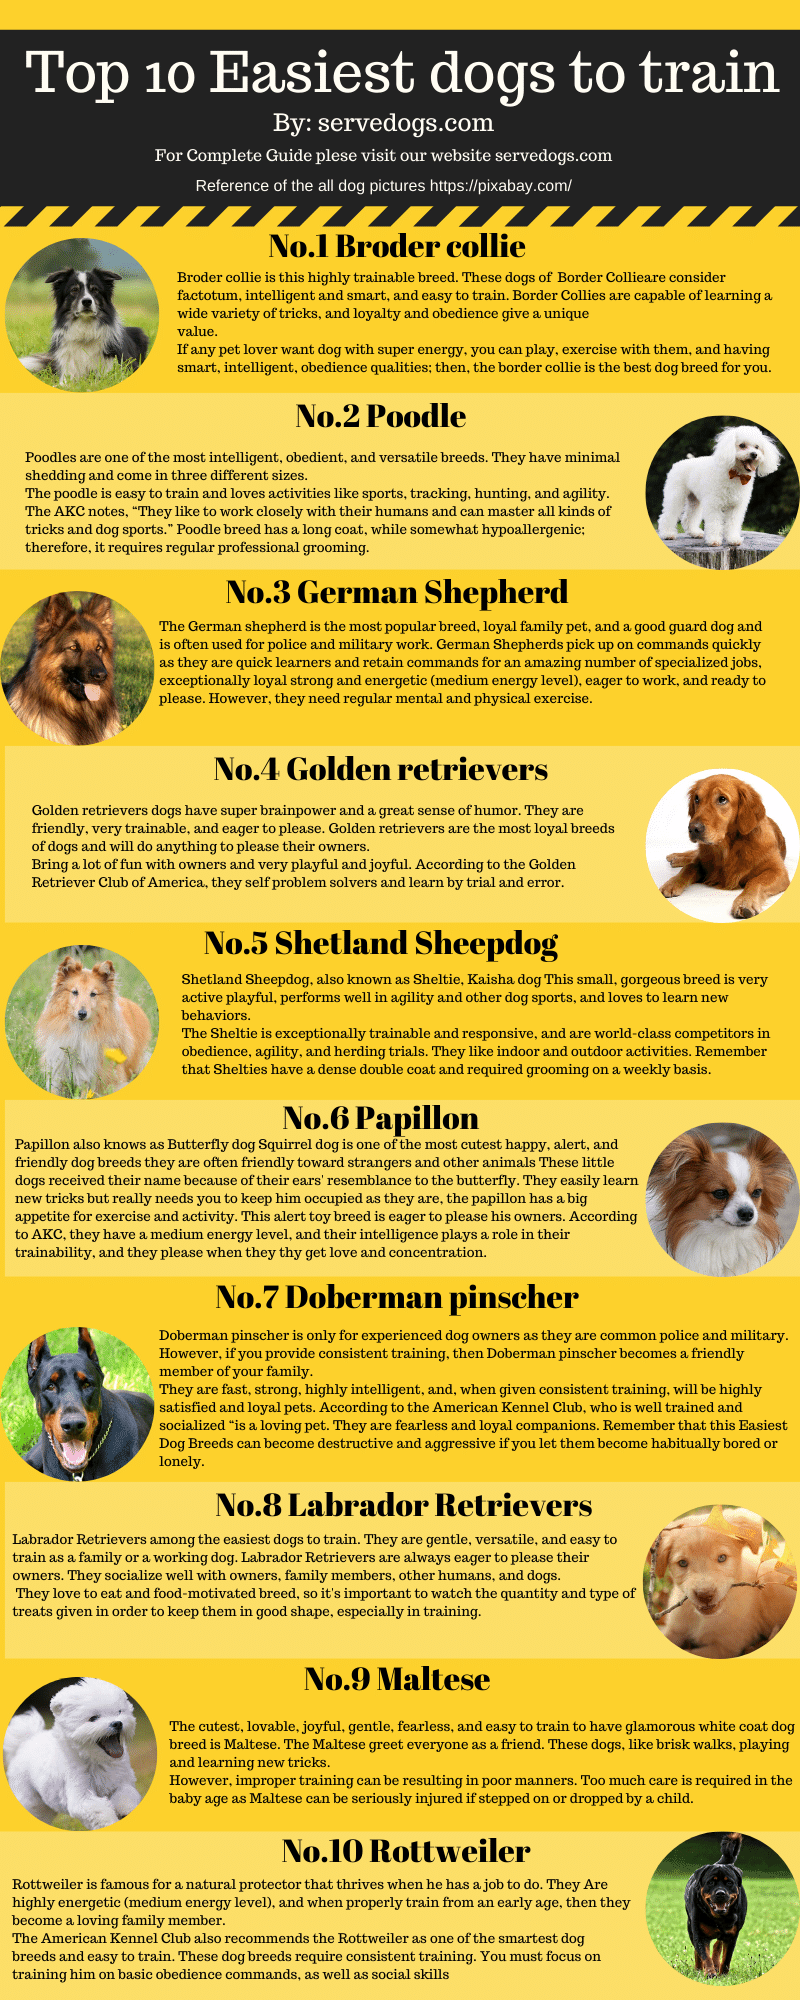 Easiest dogs to train infoghrapic